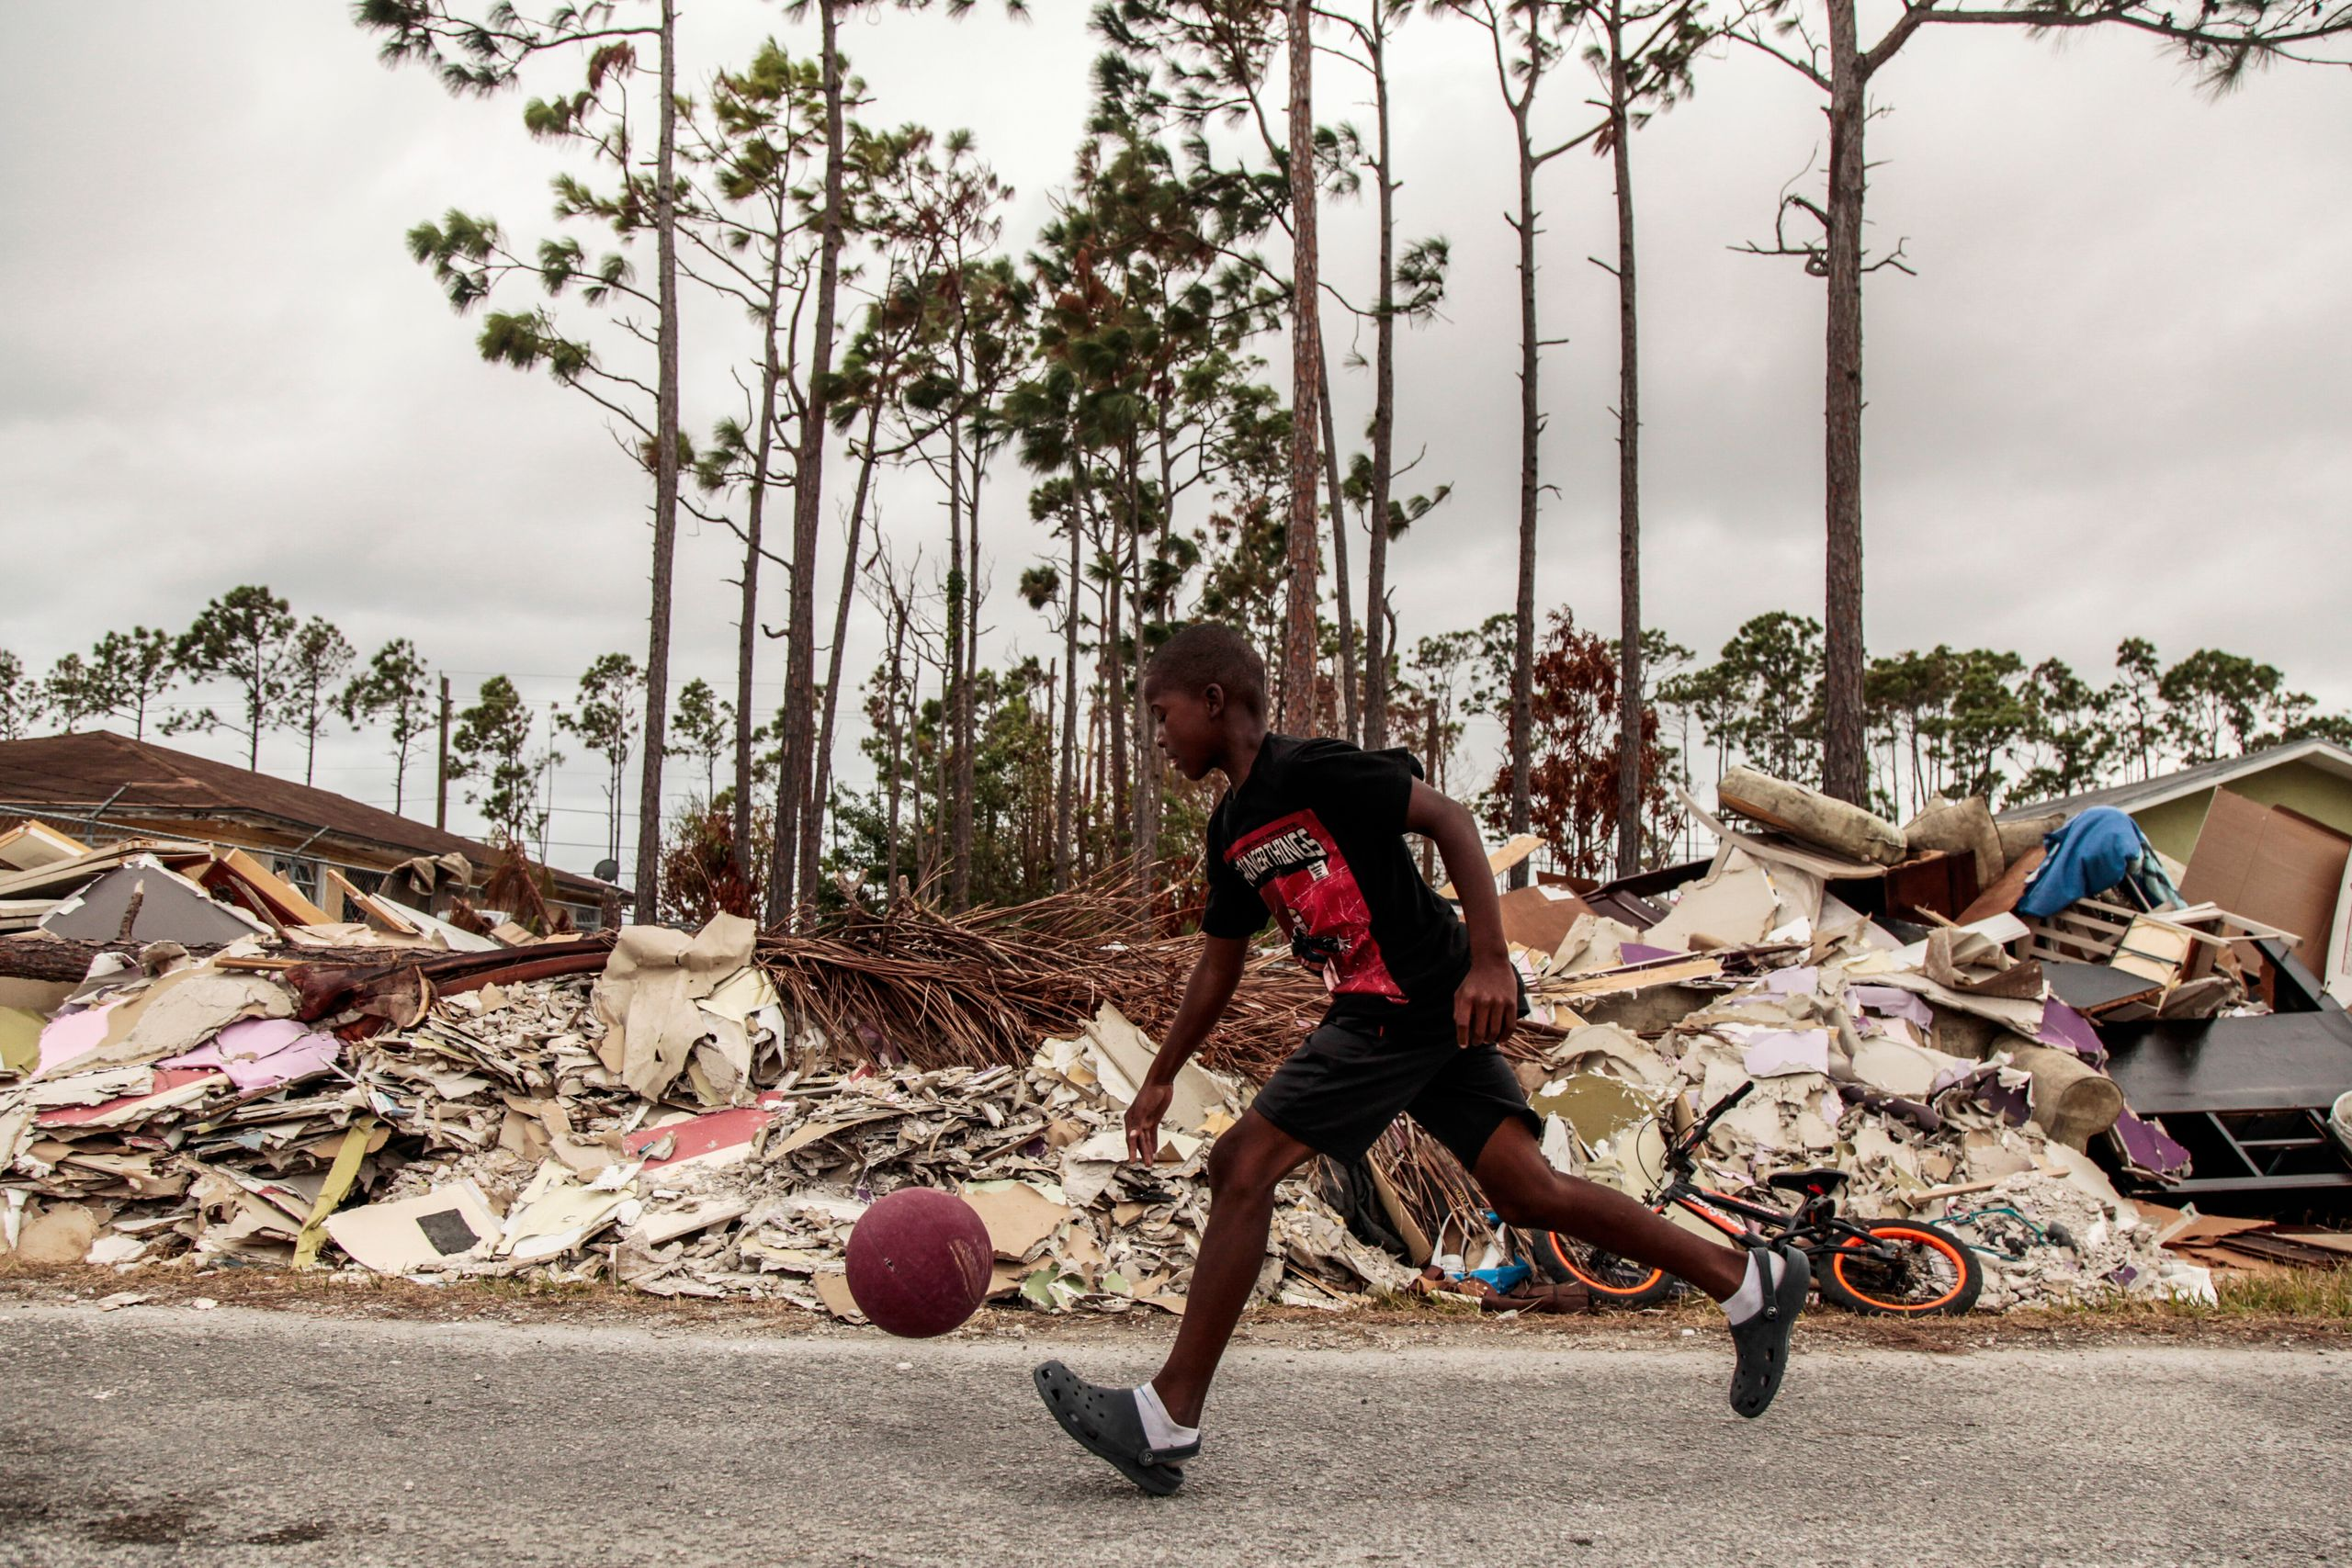 A boy dribbles a ball through debris caused by Hurricane Dorian in Freeport, Grand Bahama Sept. 21, 2019.